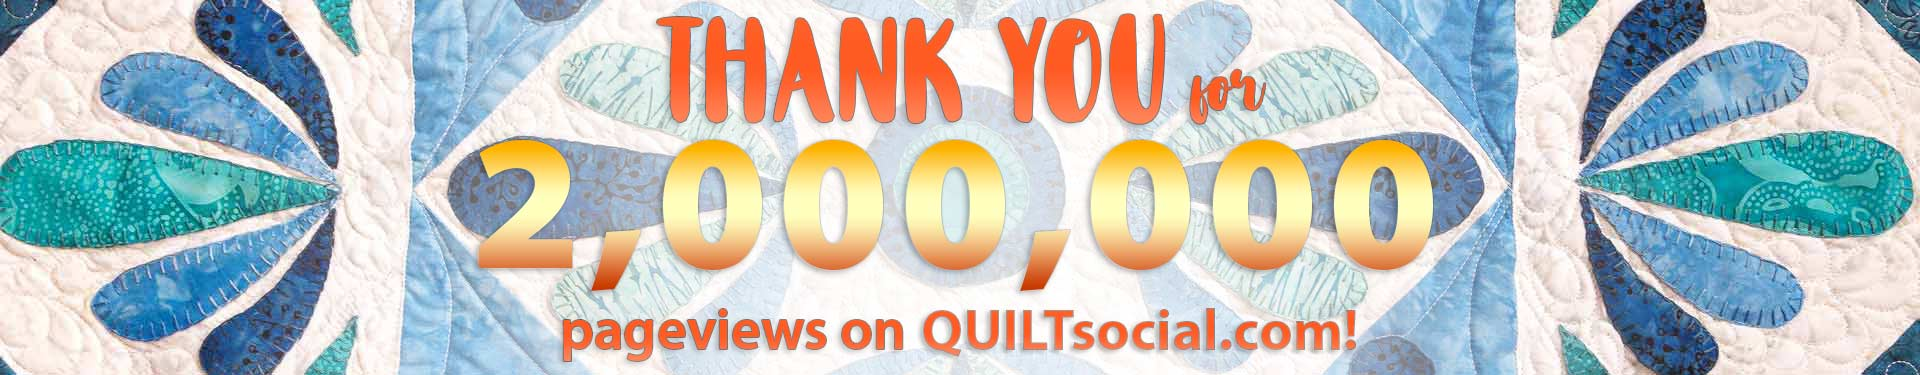 QUILTsocial is a daily quilting blog, monthly newsletter, FREE quarterly magazine, and FREE App focused on the love and art of making quilts. Join us!